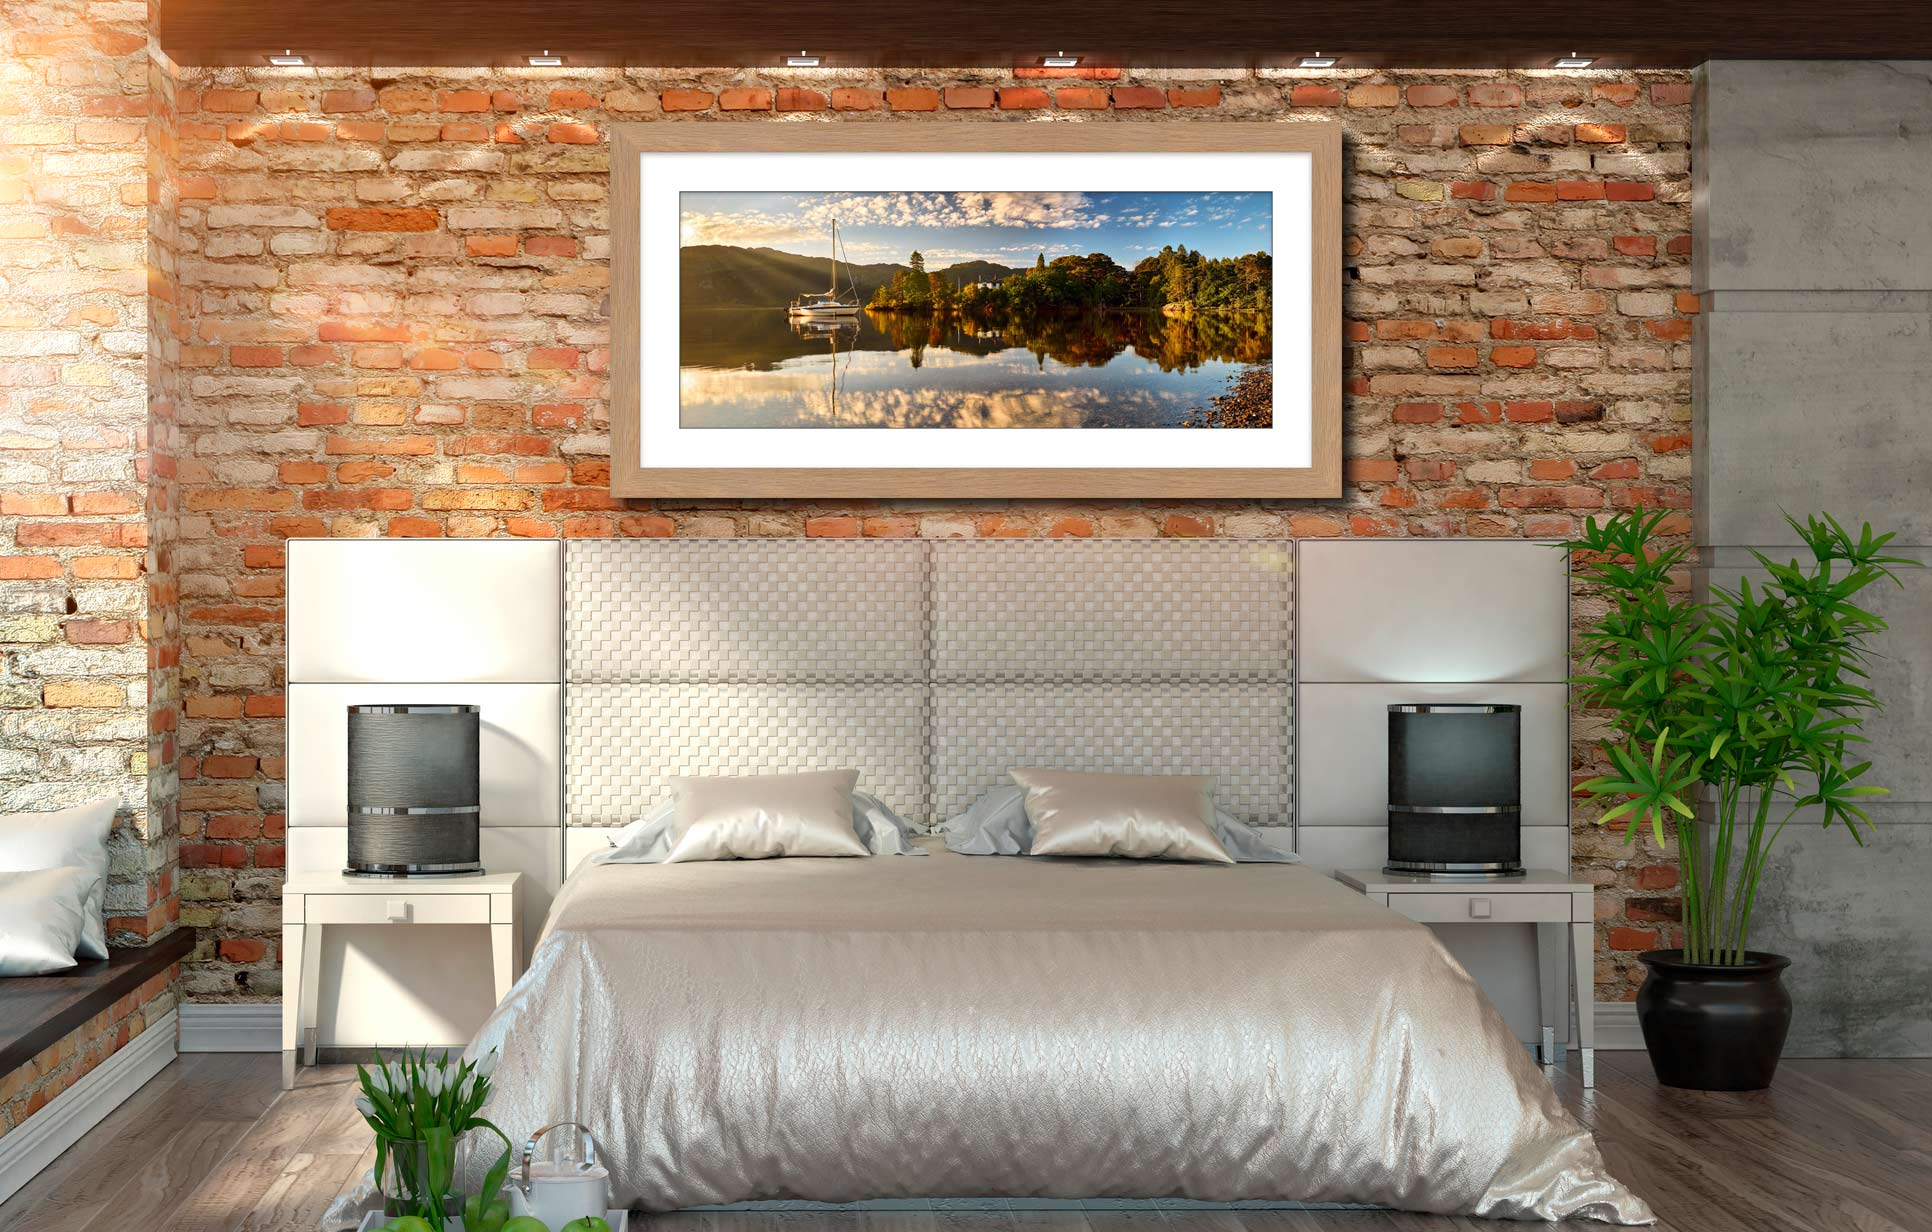 Brandelhow Point Reflections - Framed Print with Mount on Wall